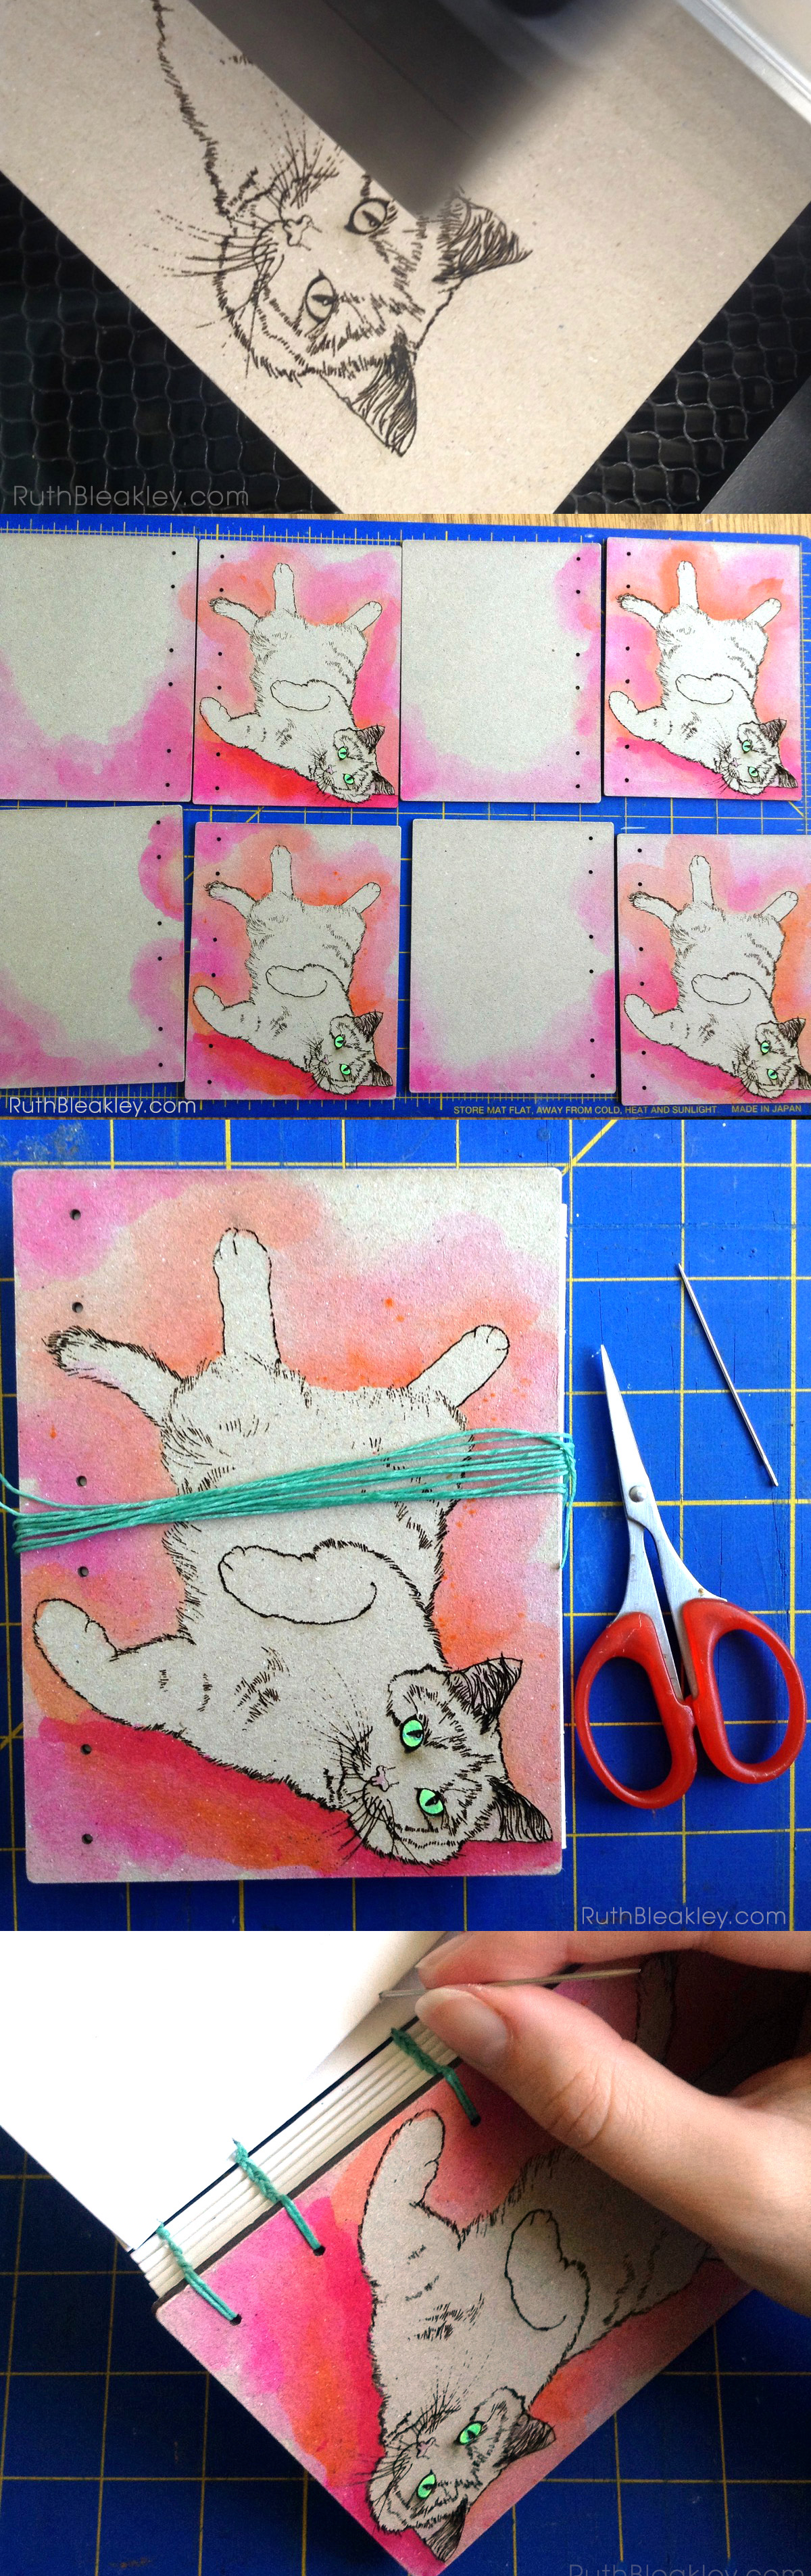 Making a Pink Cat Journal process by Ruth Bleakley